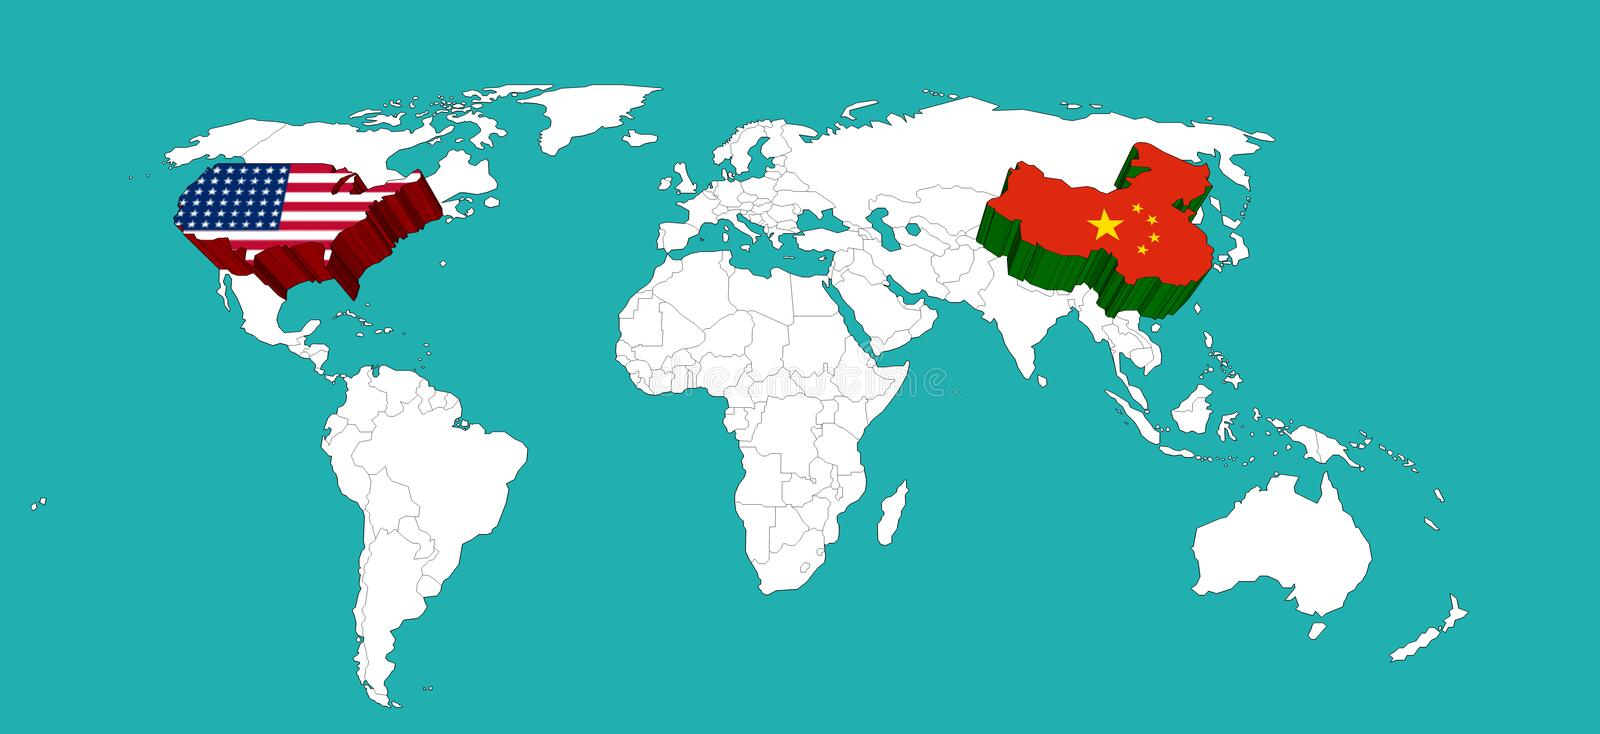 World map decorated usa by usa flage and china by china flage download world map decorated usa by usa flage and china by china flage elements of gumiabroncs Image collections